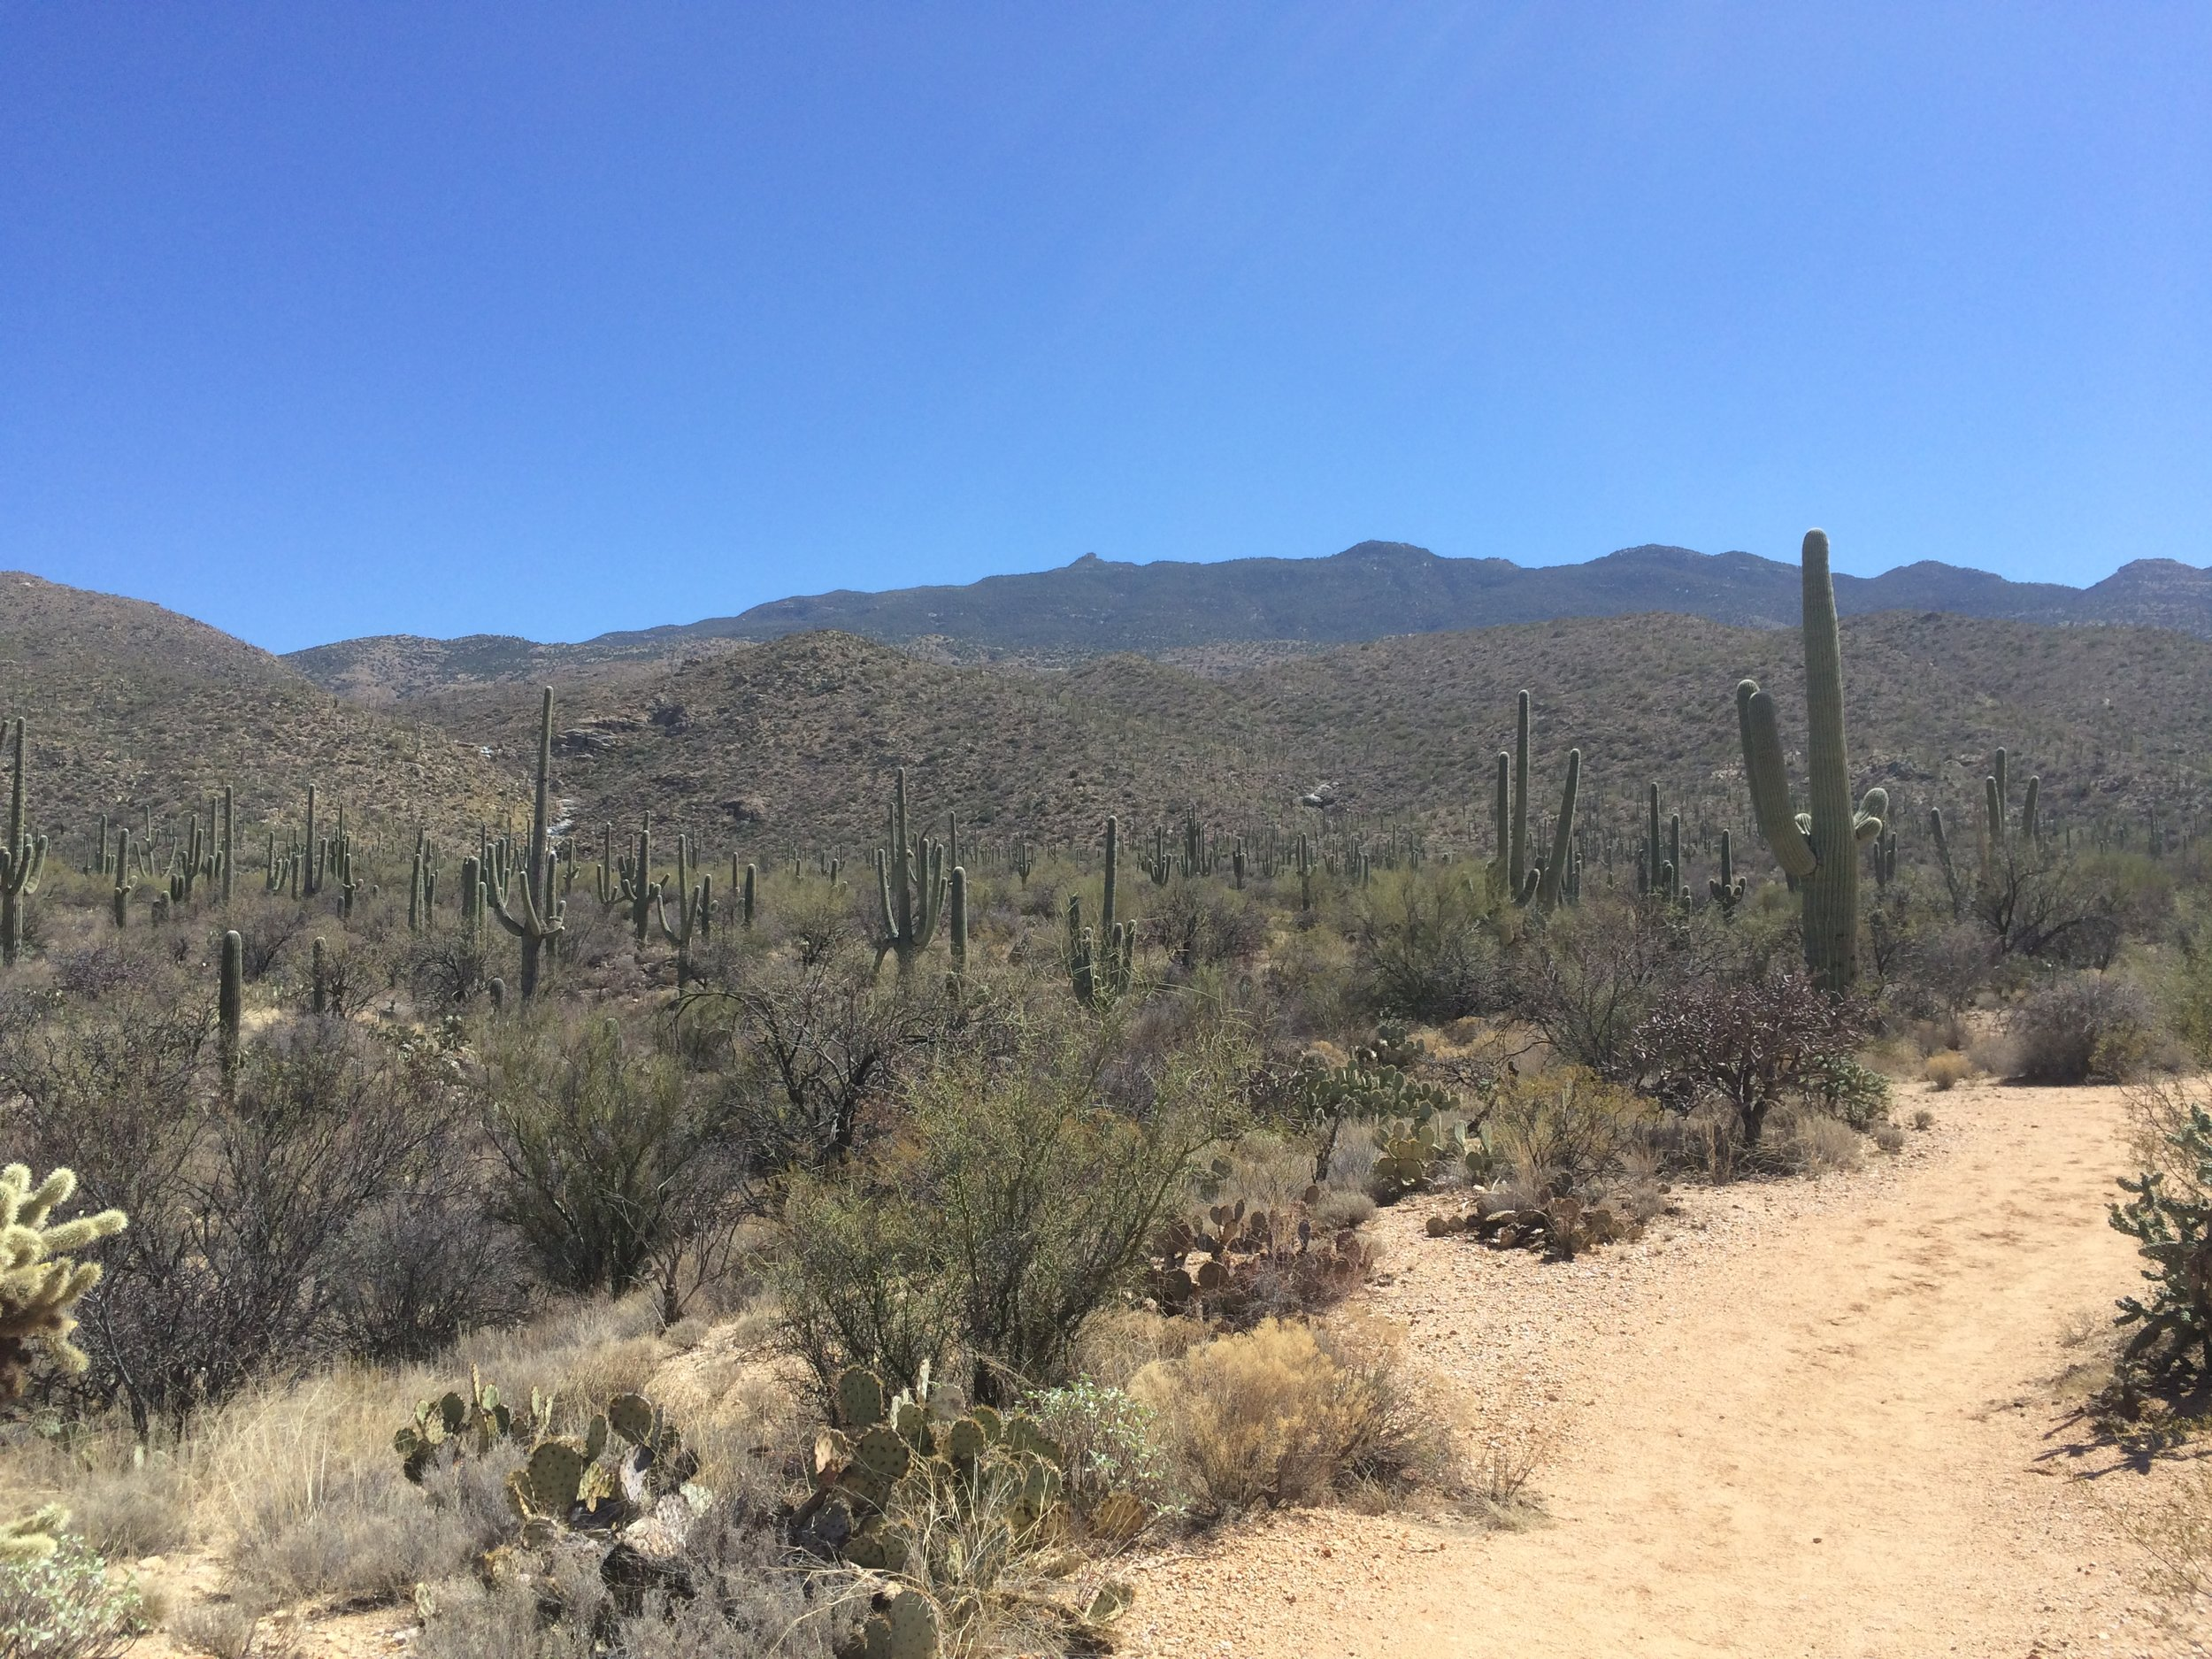 The lower areas of the park are thick with cacti.